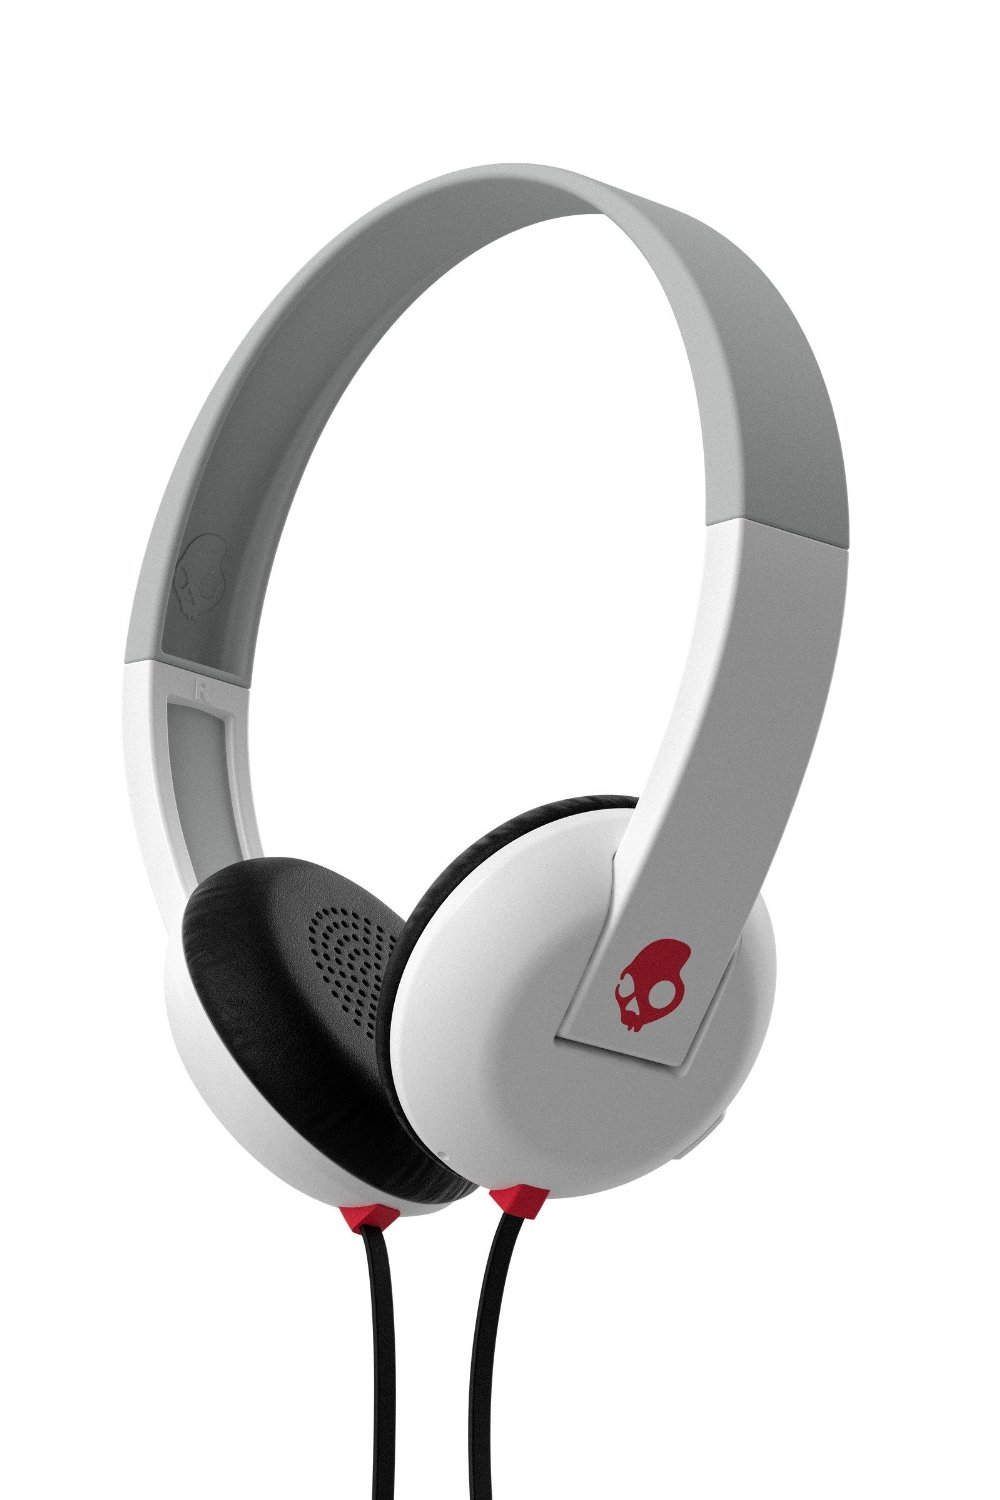 Harga Sony Headphone Extra Bass Stereo Mdr Xb450ap Headset Top 5 On The Ear Headphones Under Rs 2000